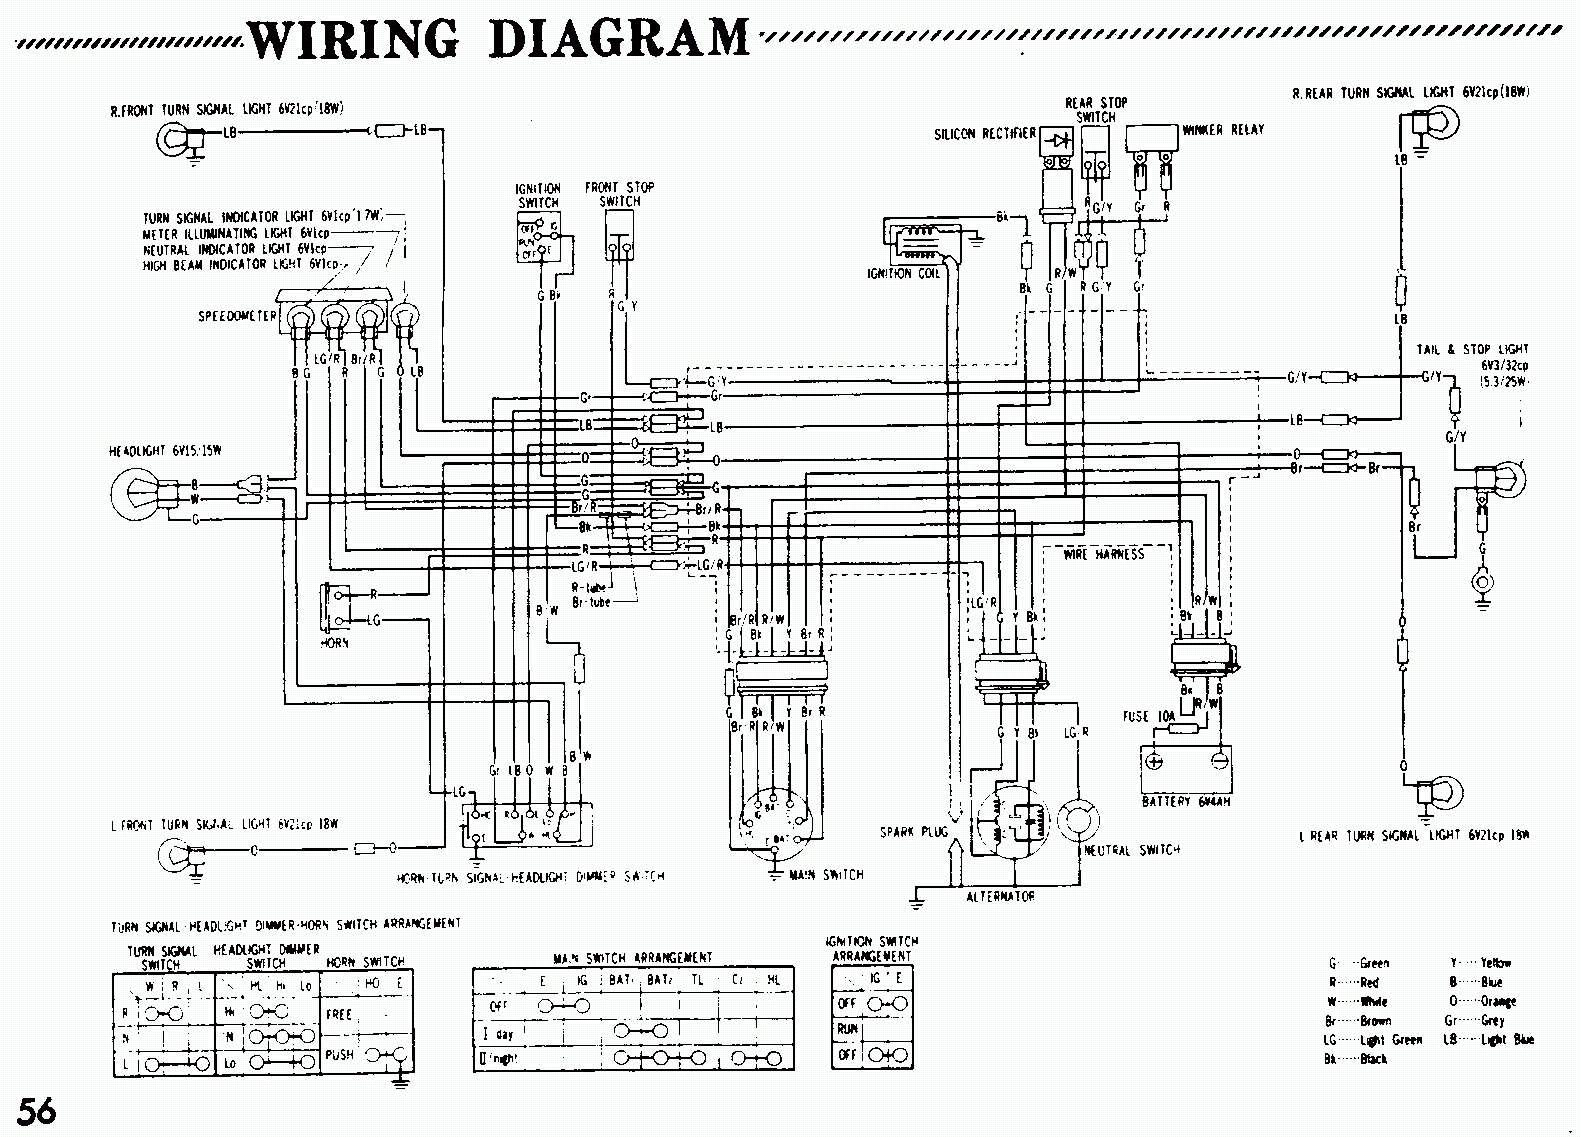 C70 Chevy Truck Brake System Diagram Tools 80 C10 Wiring 1980 Rh Thebearden Co 1998 Line